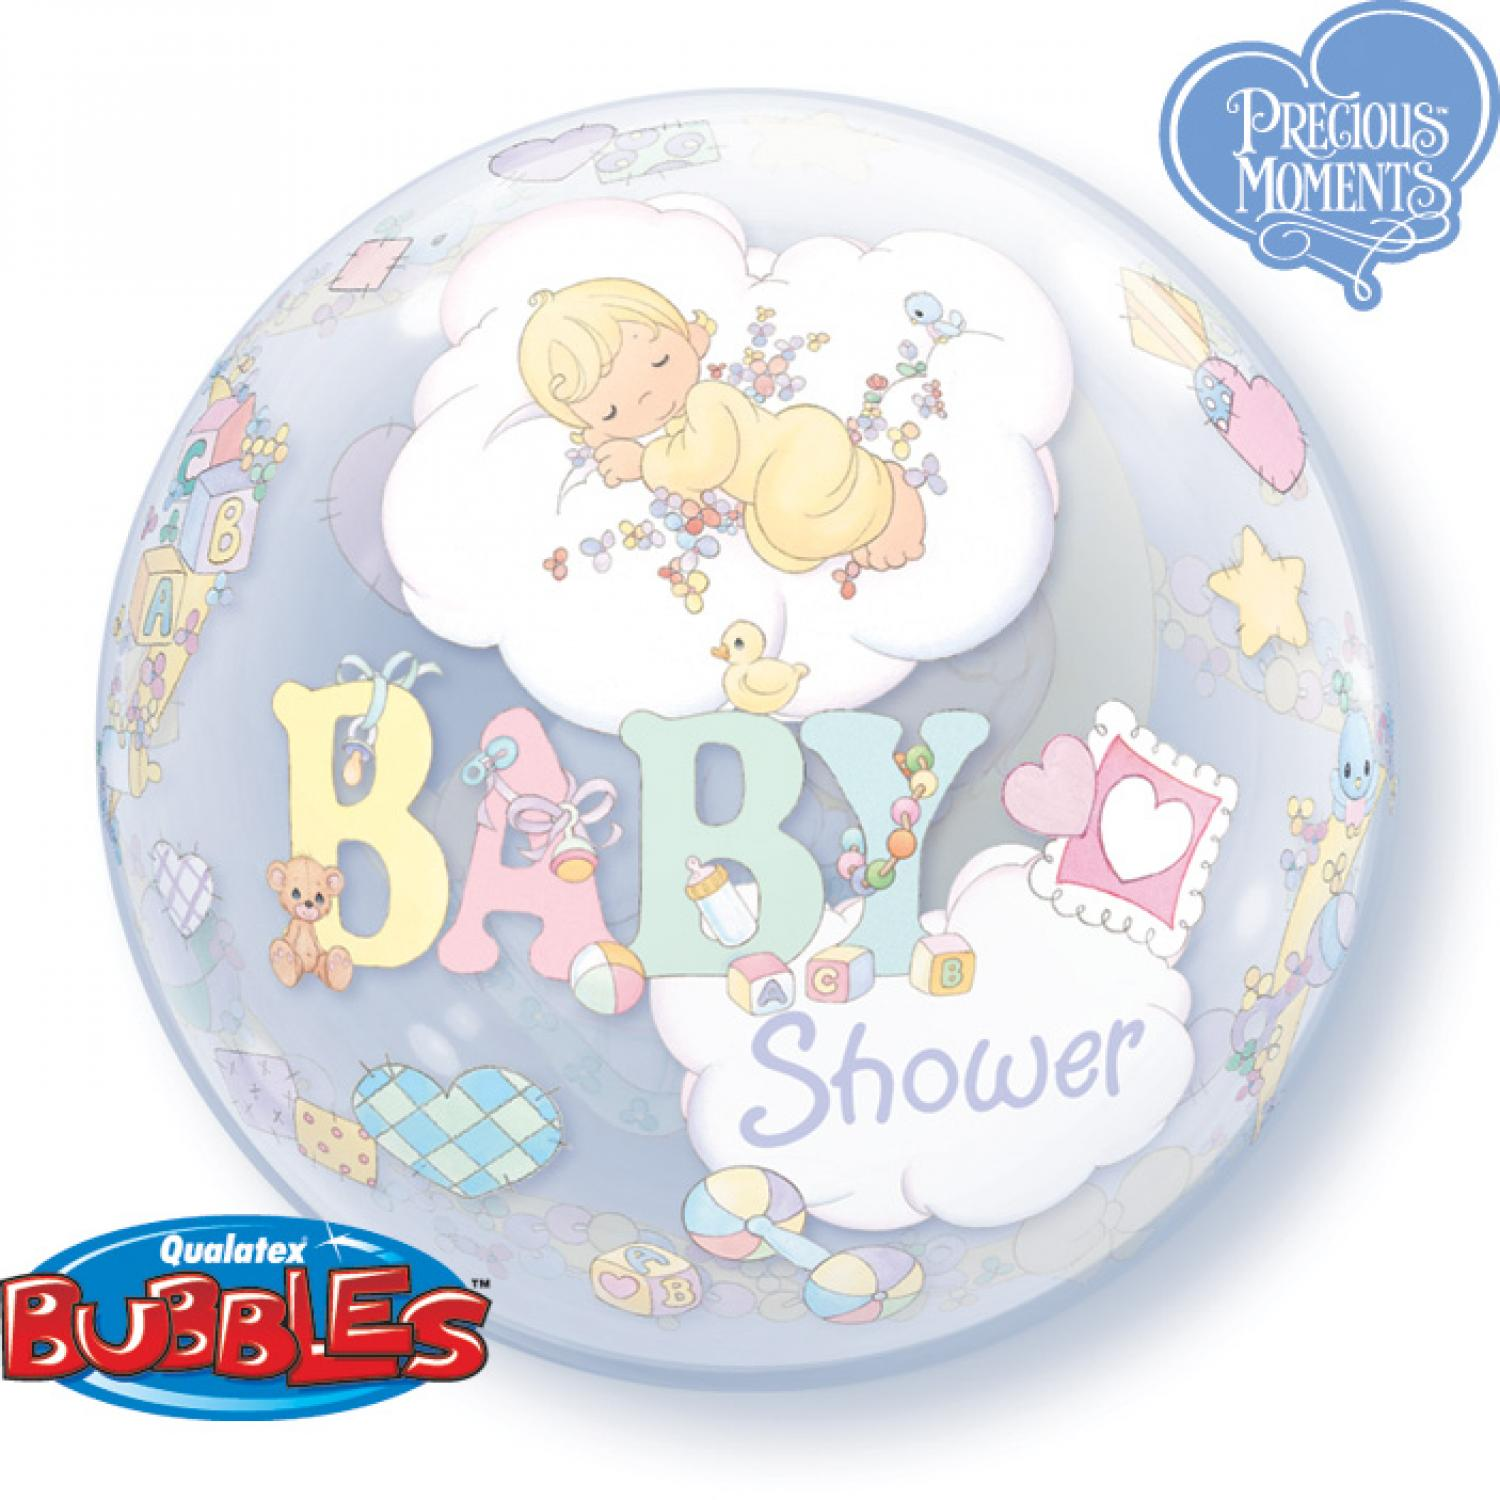 Baby shower bubble balloon